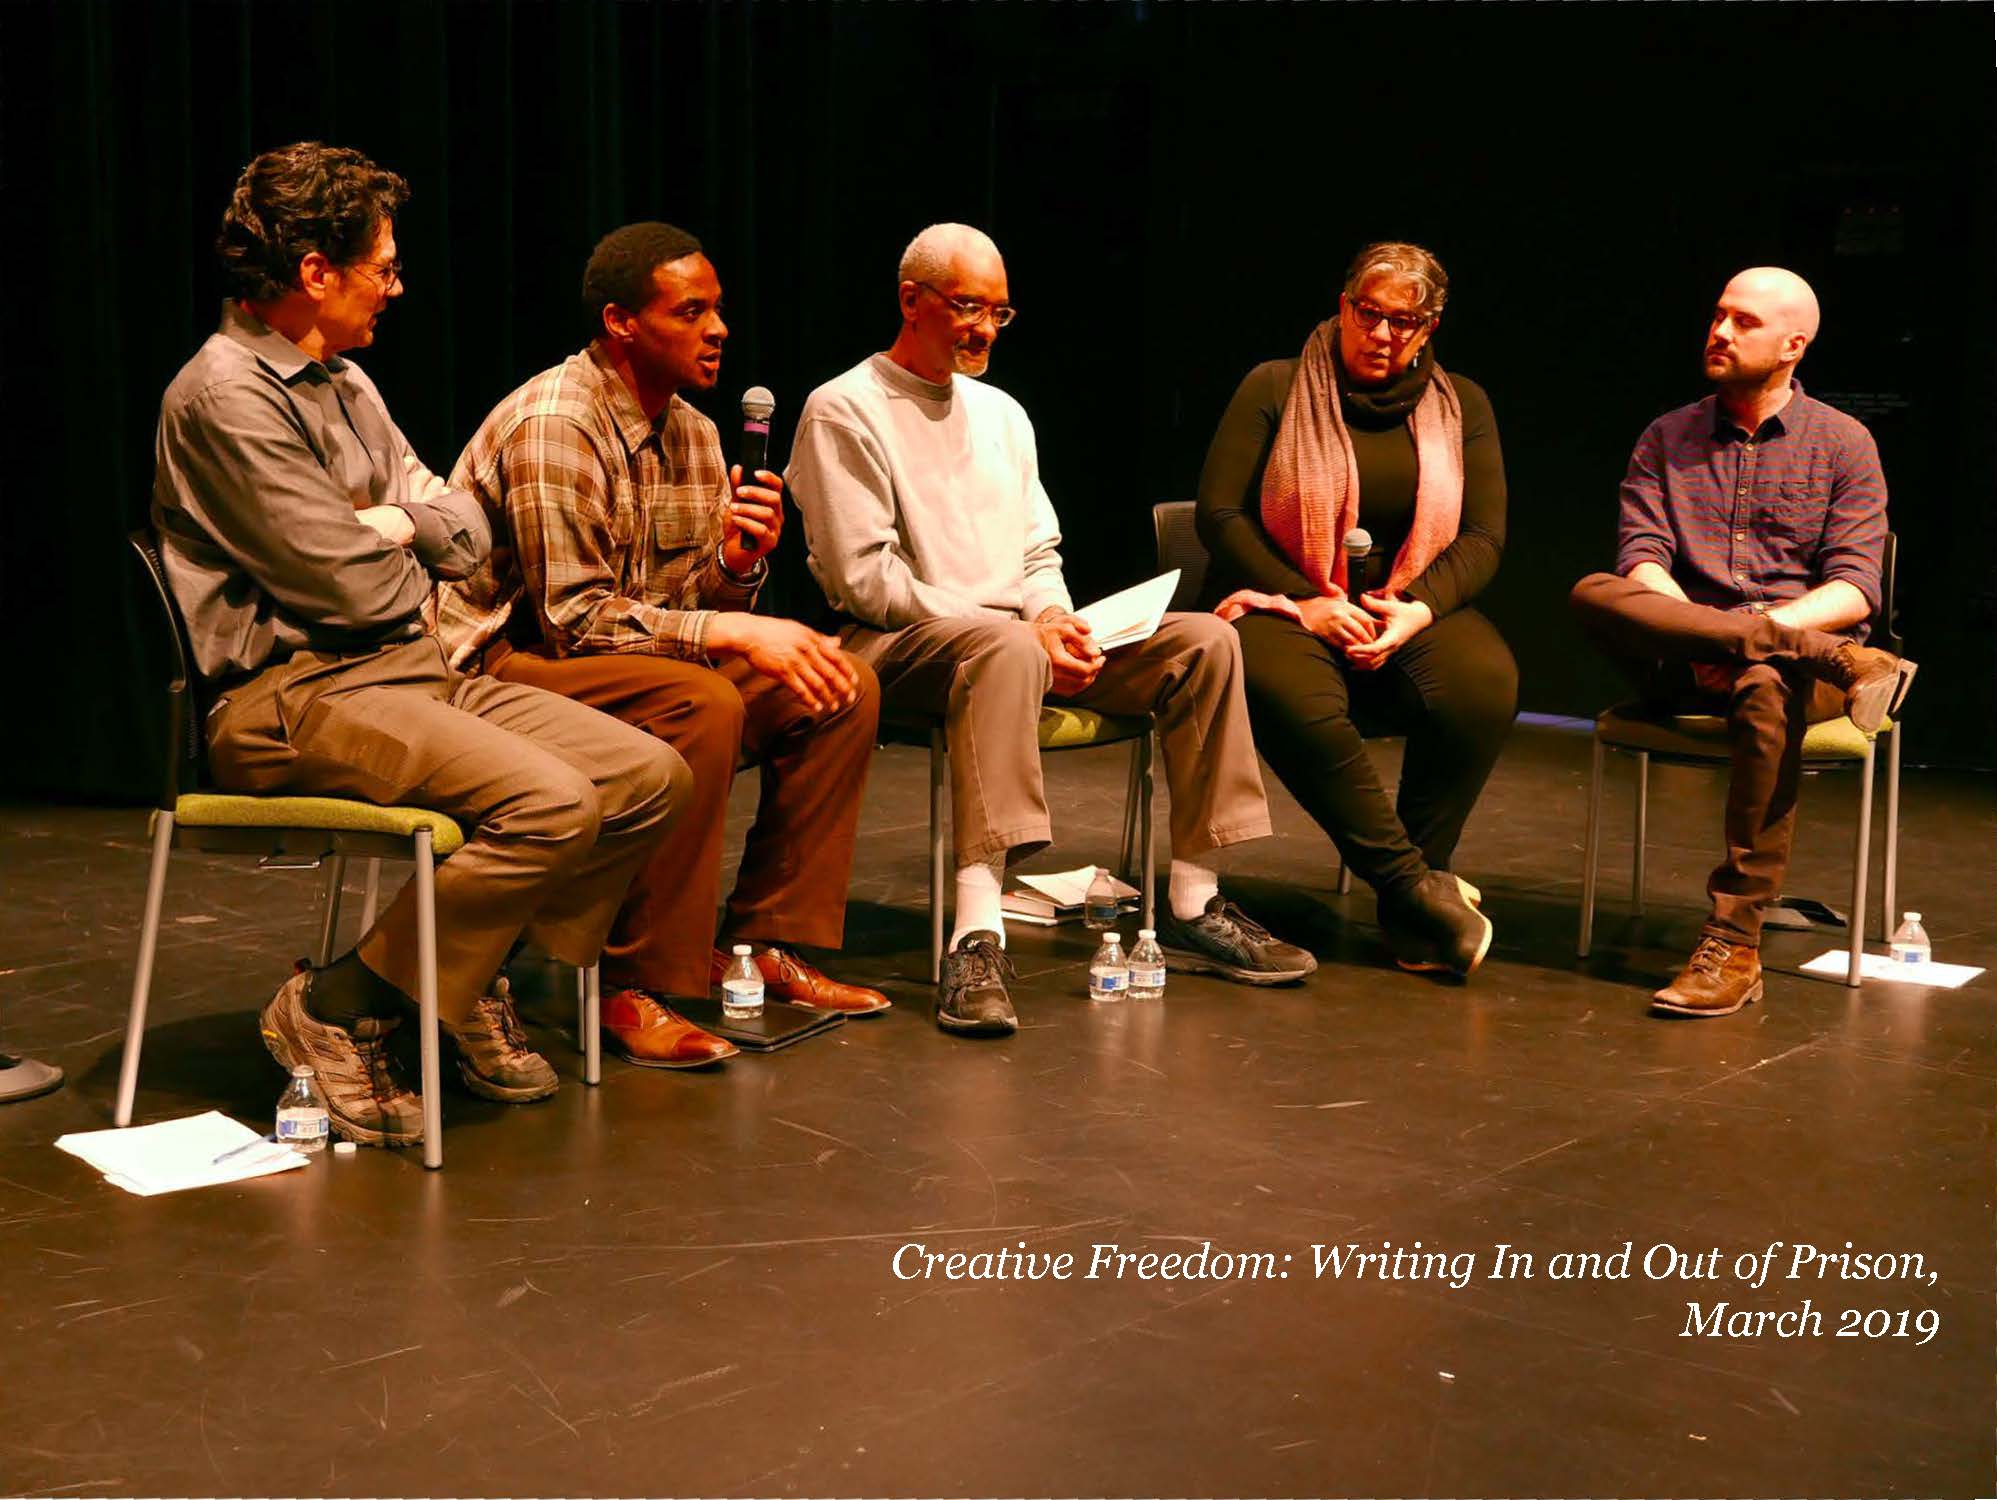 Creative freedom: writing in and out of prison